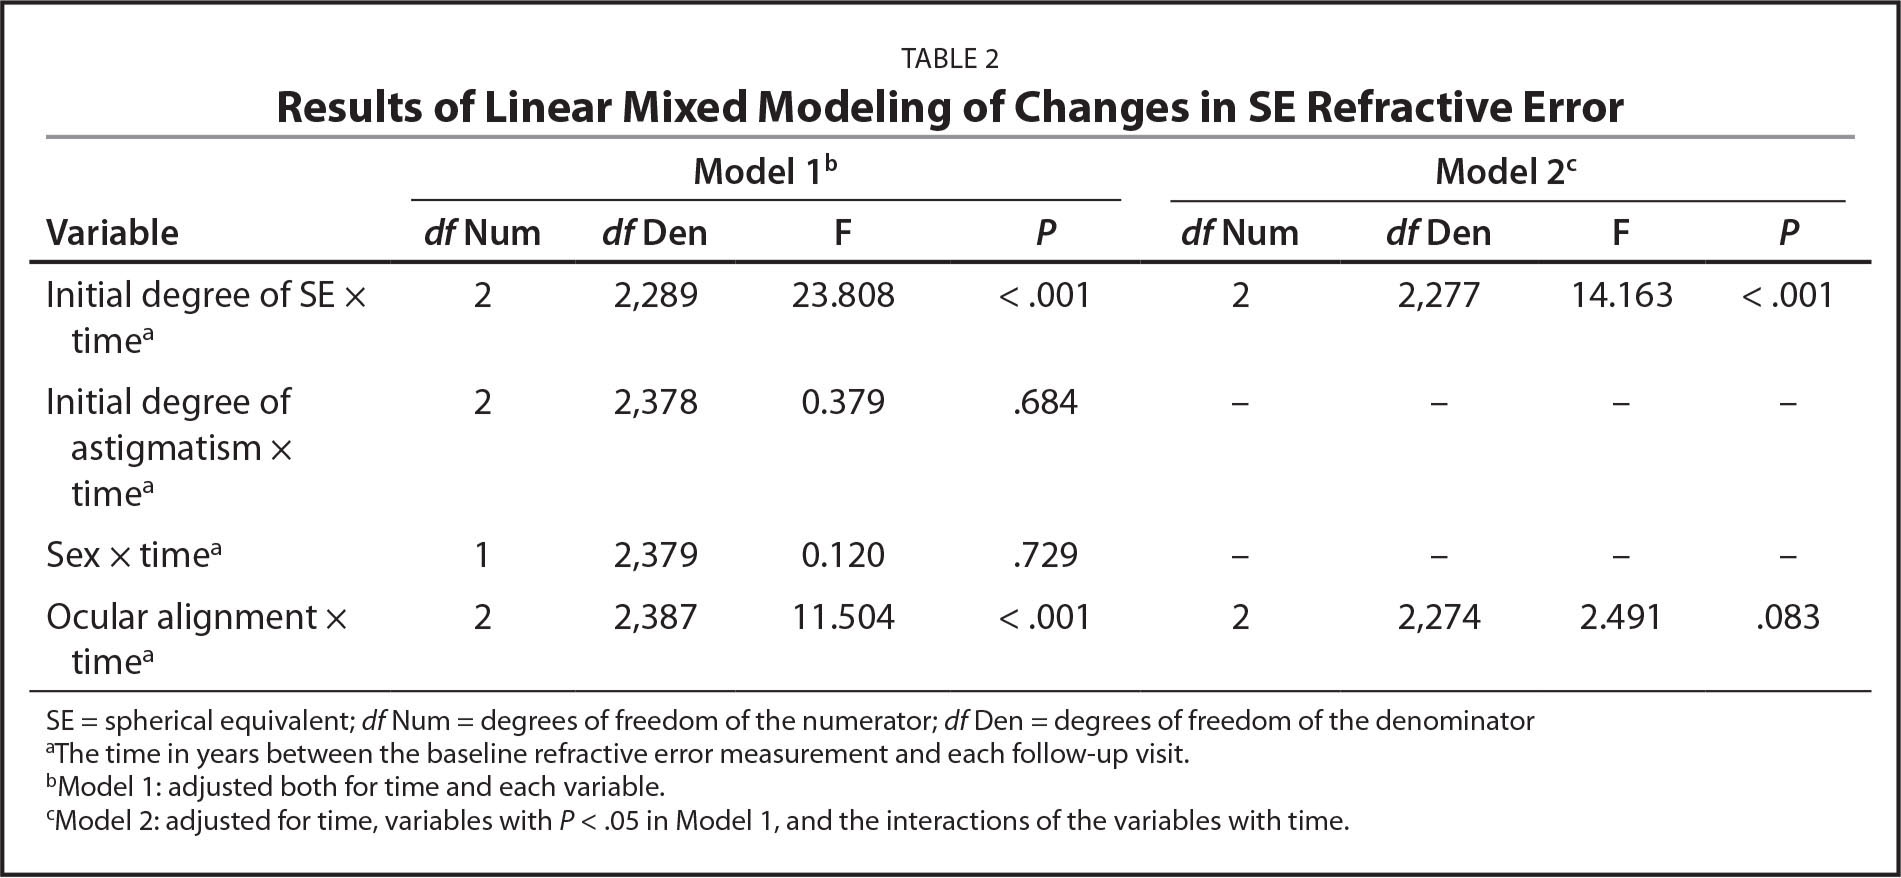 Results of Linear Mixed Modeling of Changes in SE Refractive Error